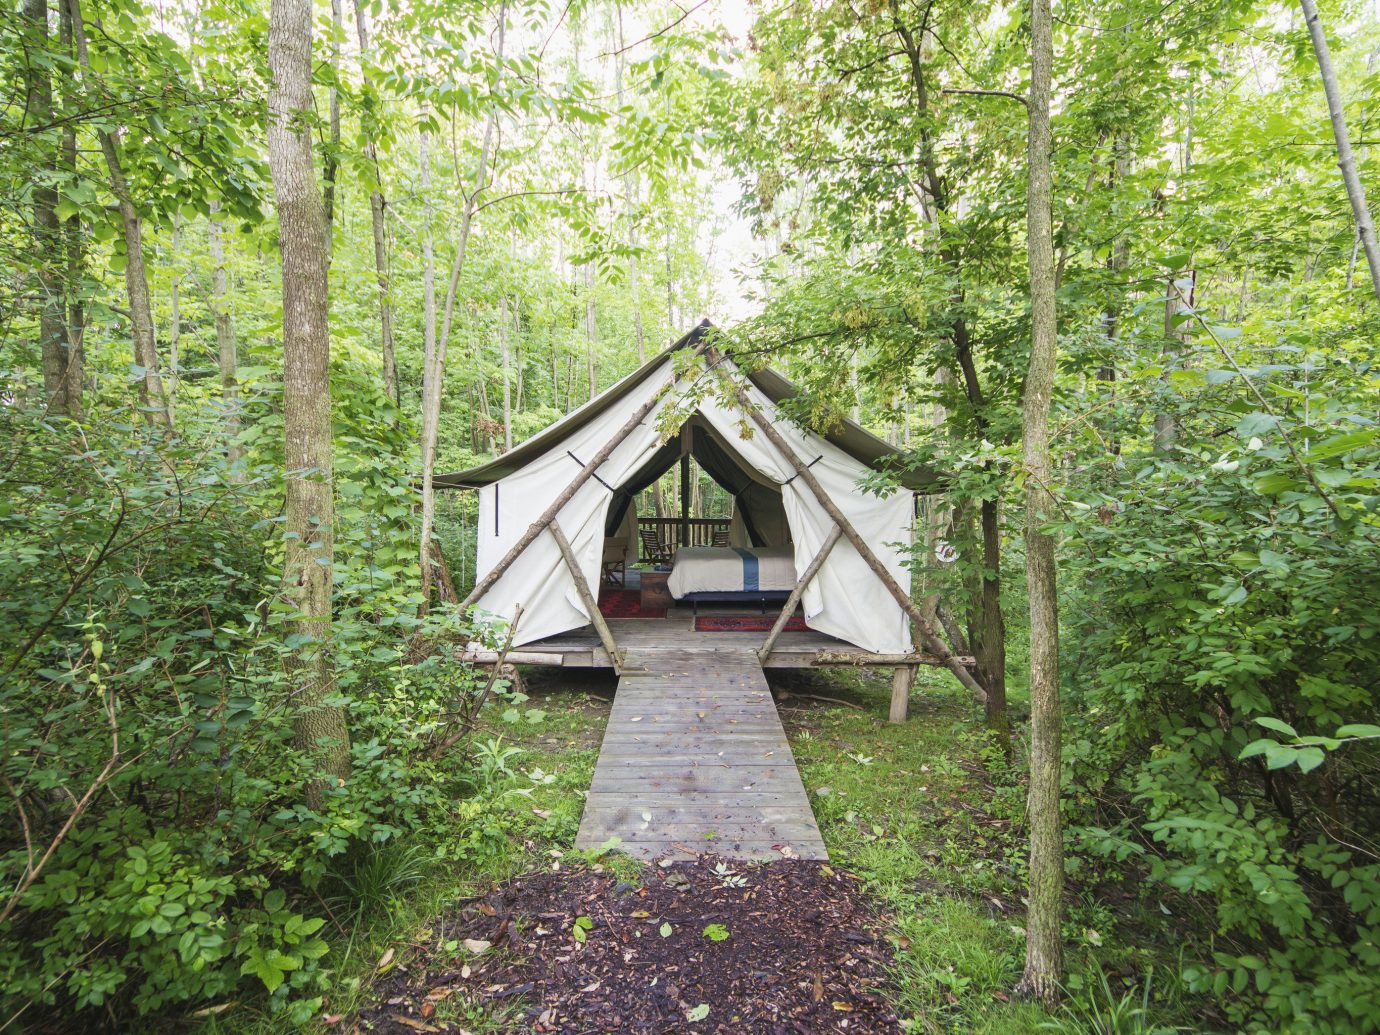 Glamping Luxury Travel Trip Ideas tree outdoor grass nature reserve path Forest vegetation woodland building wood Jungle rainforest old growth forest plant trail real estate cottage hut house state park wooded area lush surrounded Garden stone